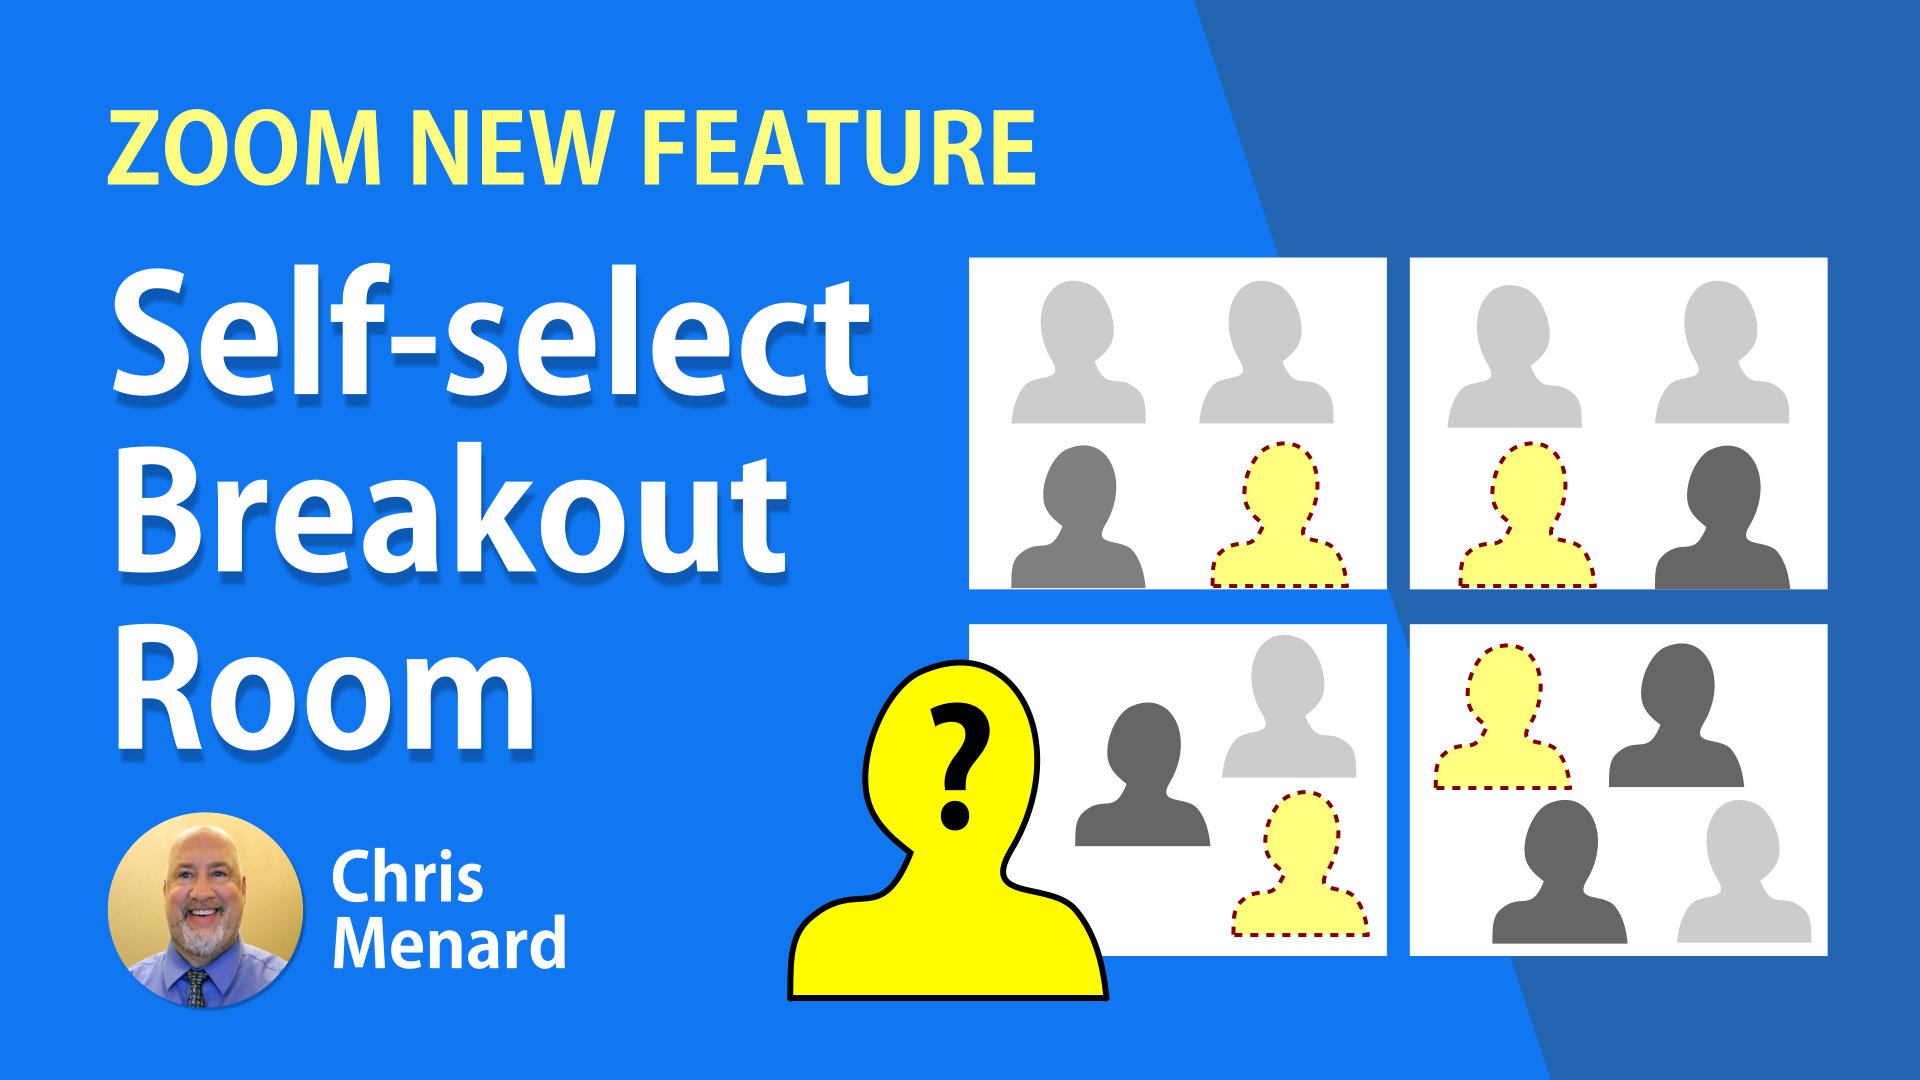 Self-select Breakout Rooms in Zoom